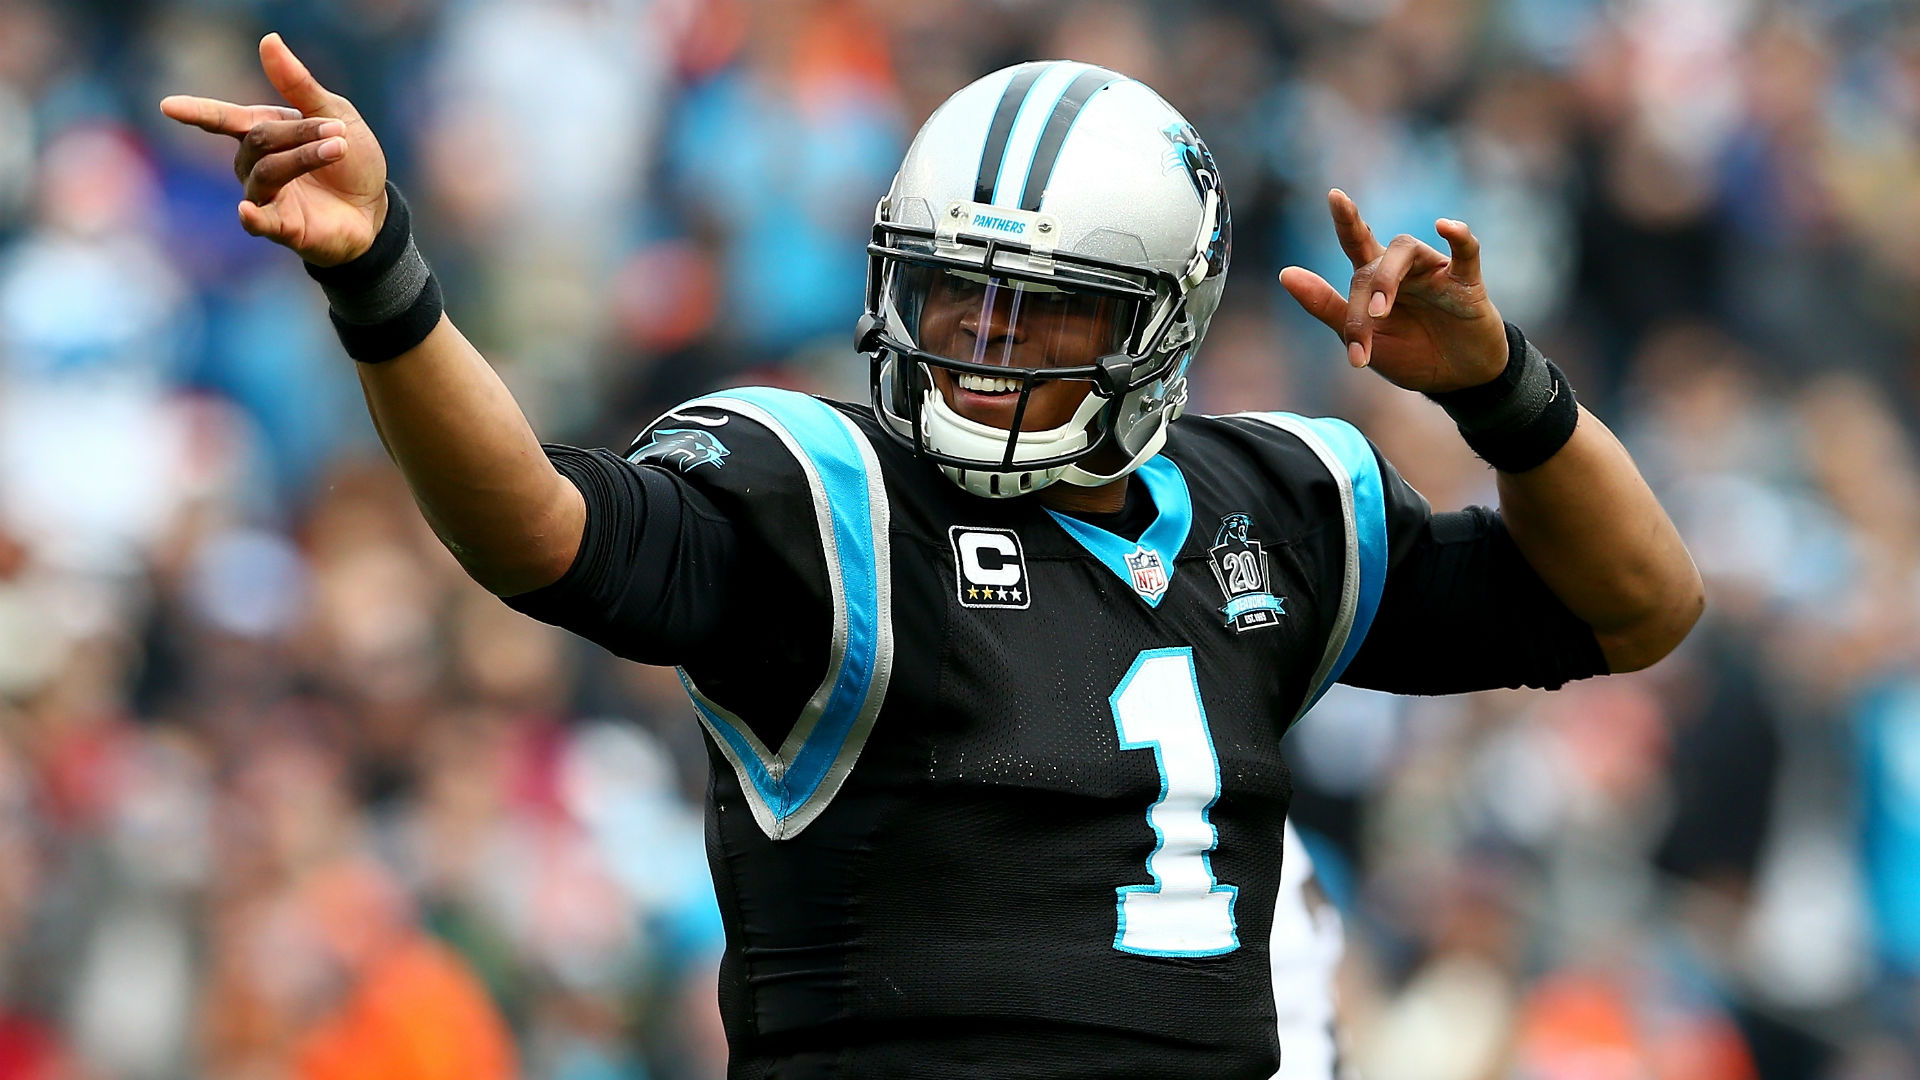 Panthers vs. Falcons betting lines and pick - NFC South title up for grabs